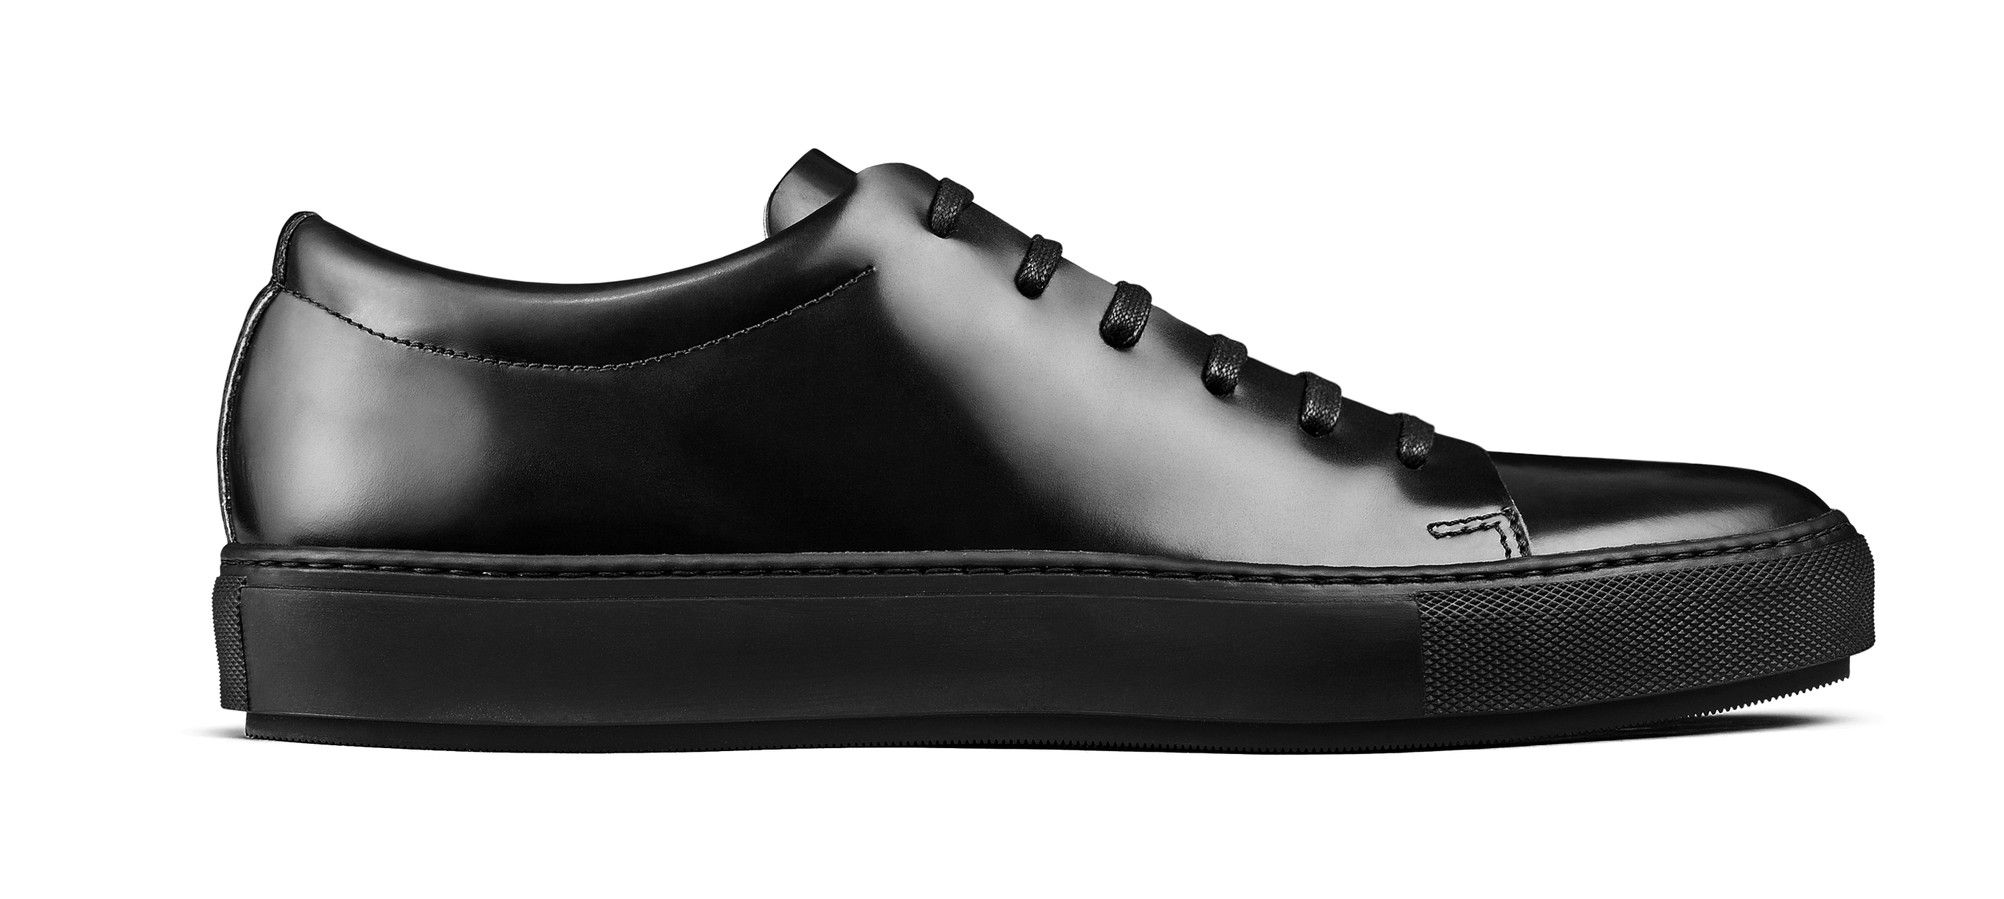 b1fdb85ad Acne Studios Adrian Black Leather tennis shoes | Gift Ideas | Shoes ...